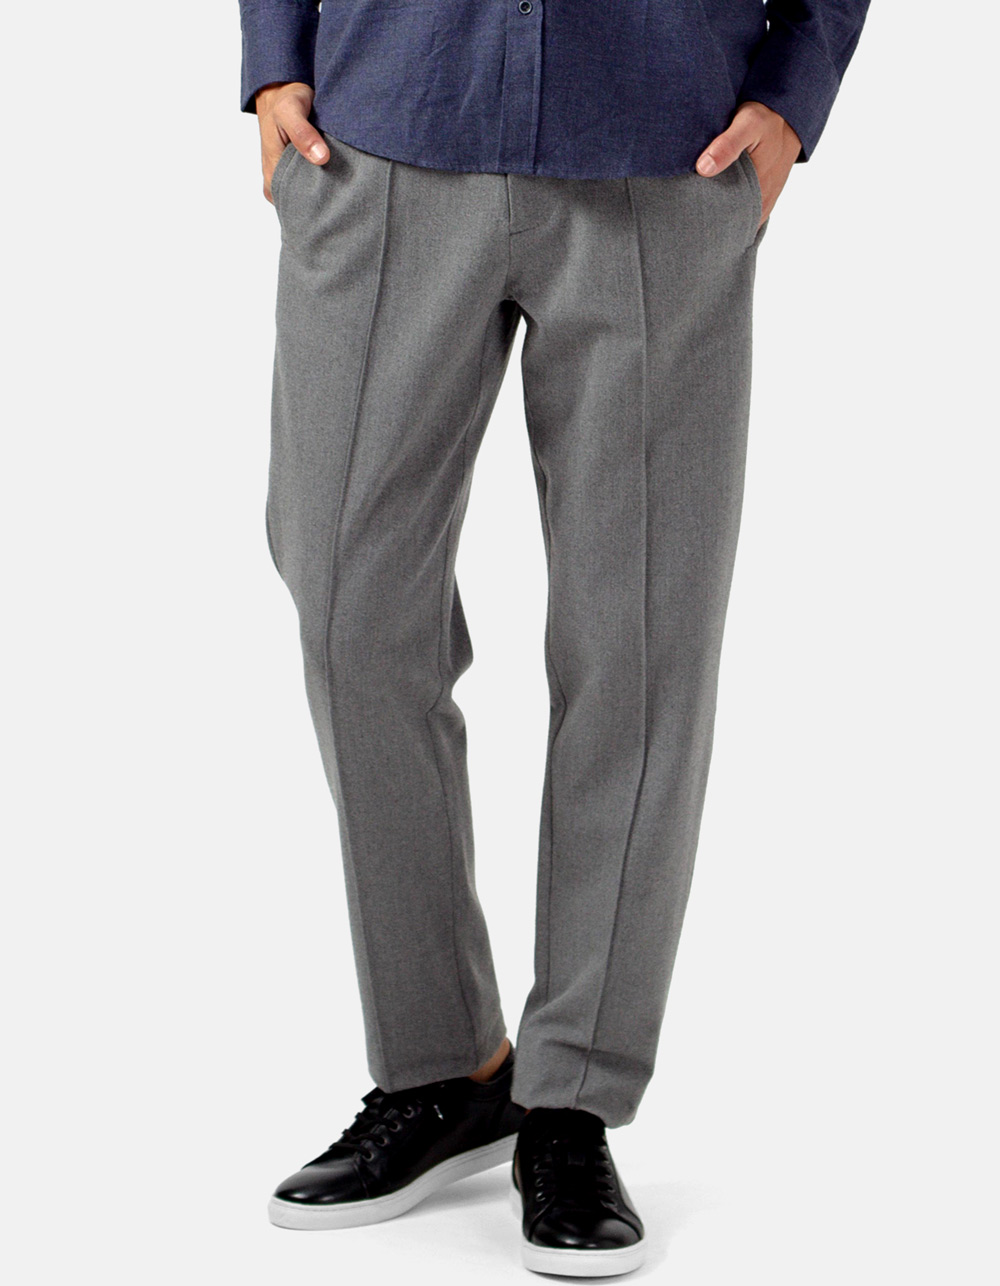 Light grey trousers with darts and wool